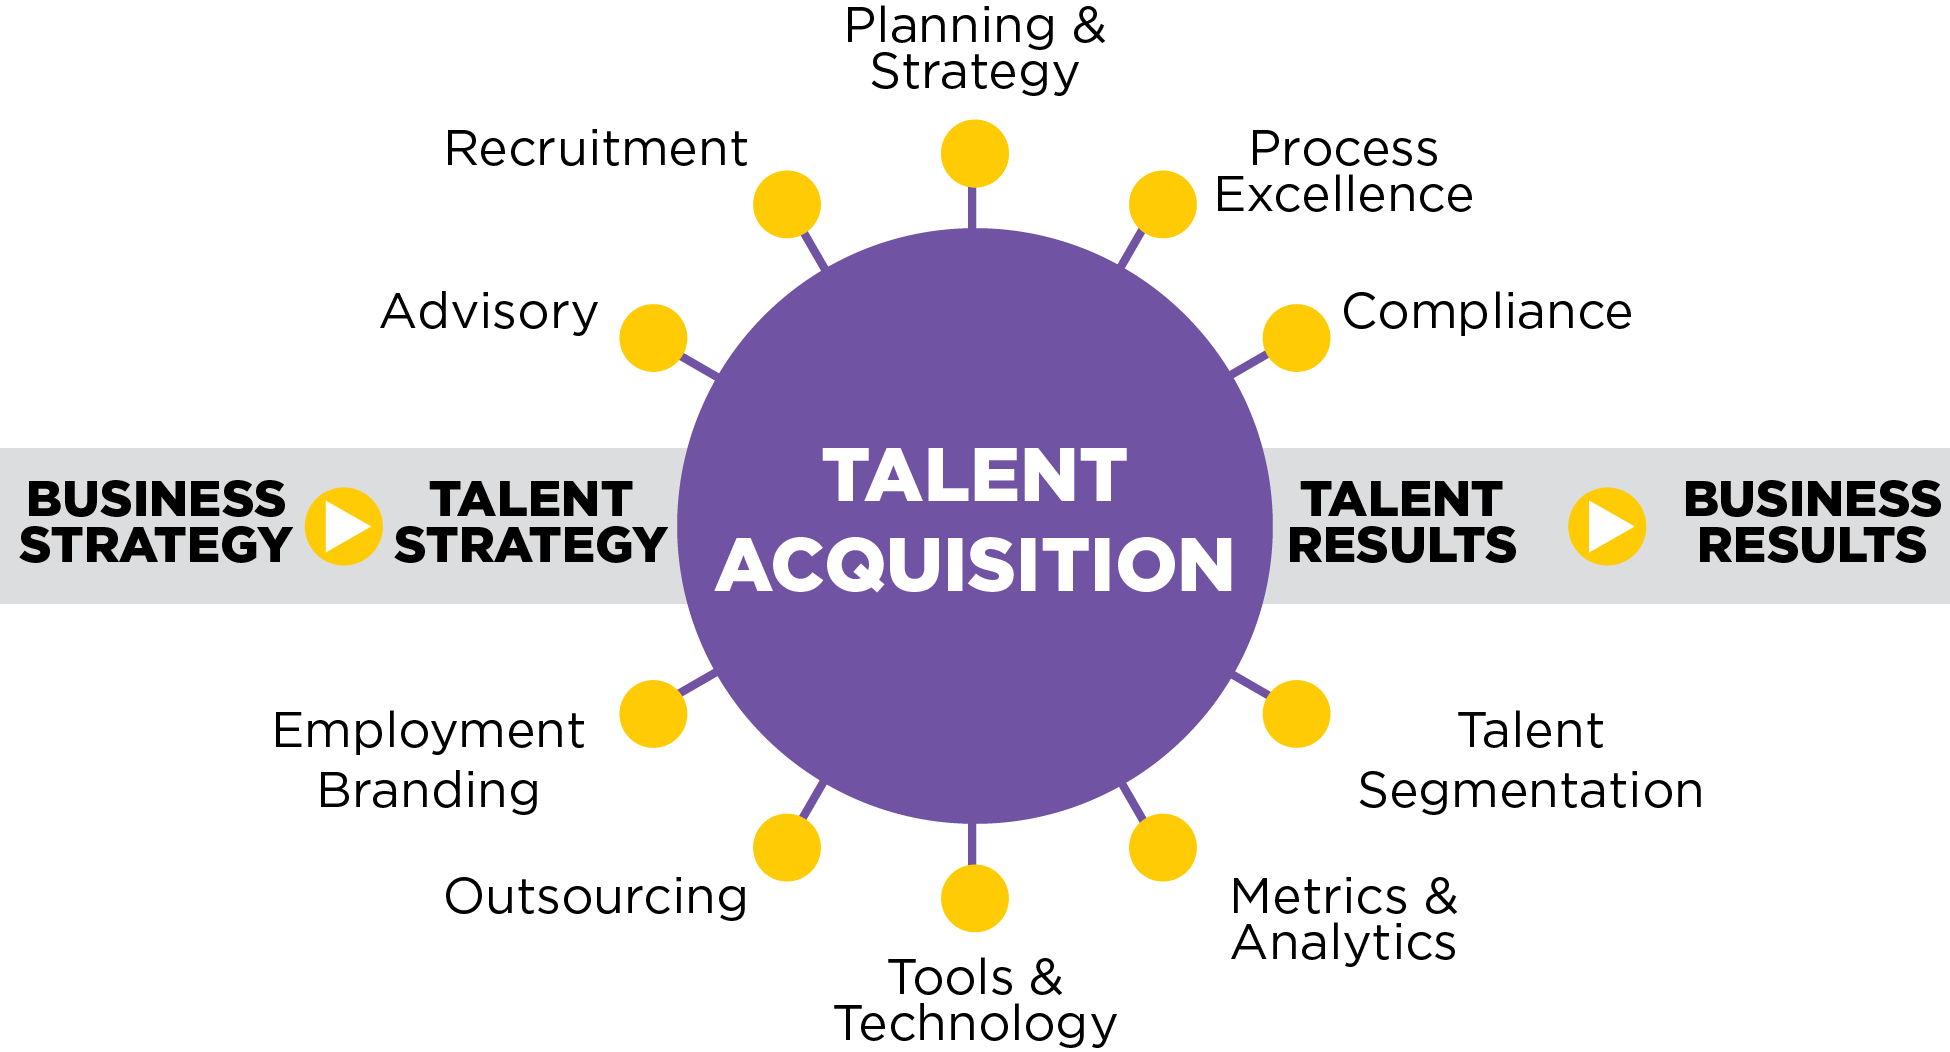 Talent Acquisition Takes A Long Term View, Identifies Future Business Needs  And Builds Talent Pools For That Future. It Is A Component Of Talent  Management ...